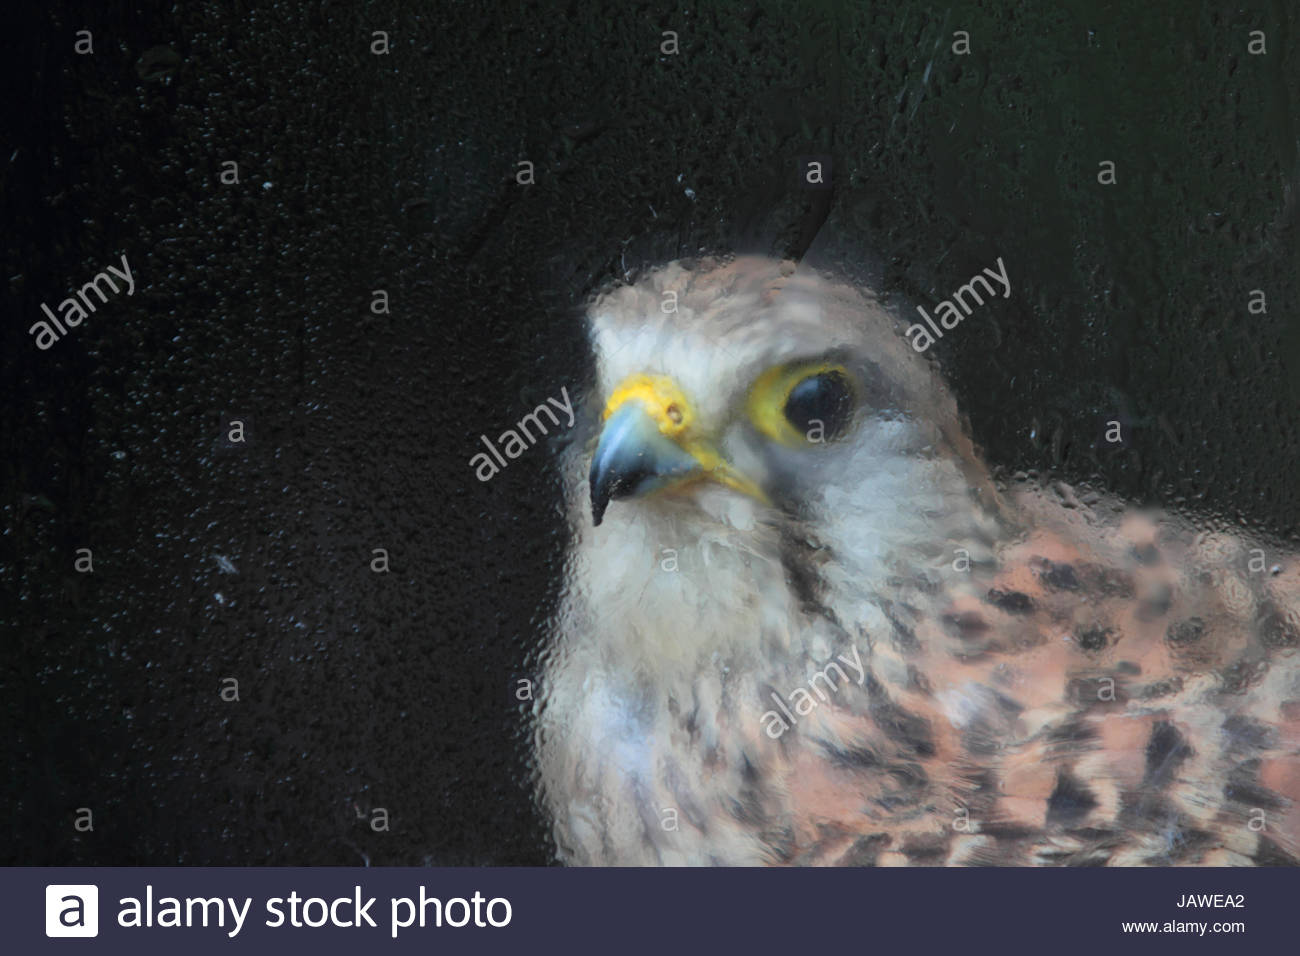 A female European kestrel, Falco tinnunculus, rescued after an electric shock. - Stock Image